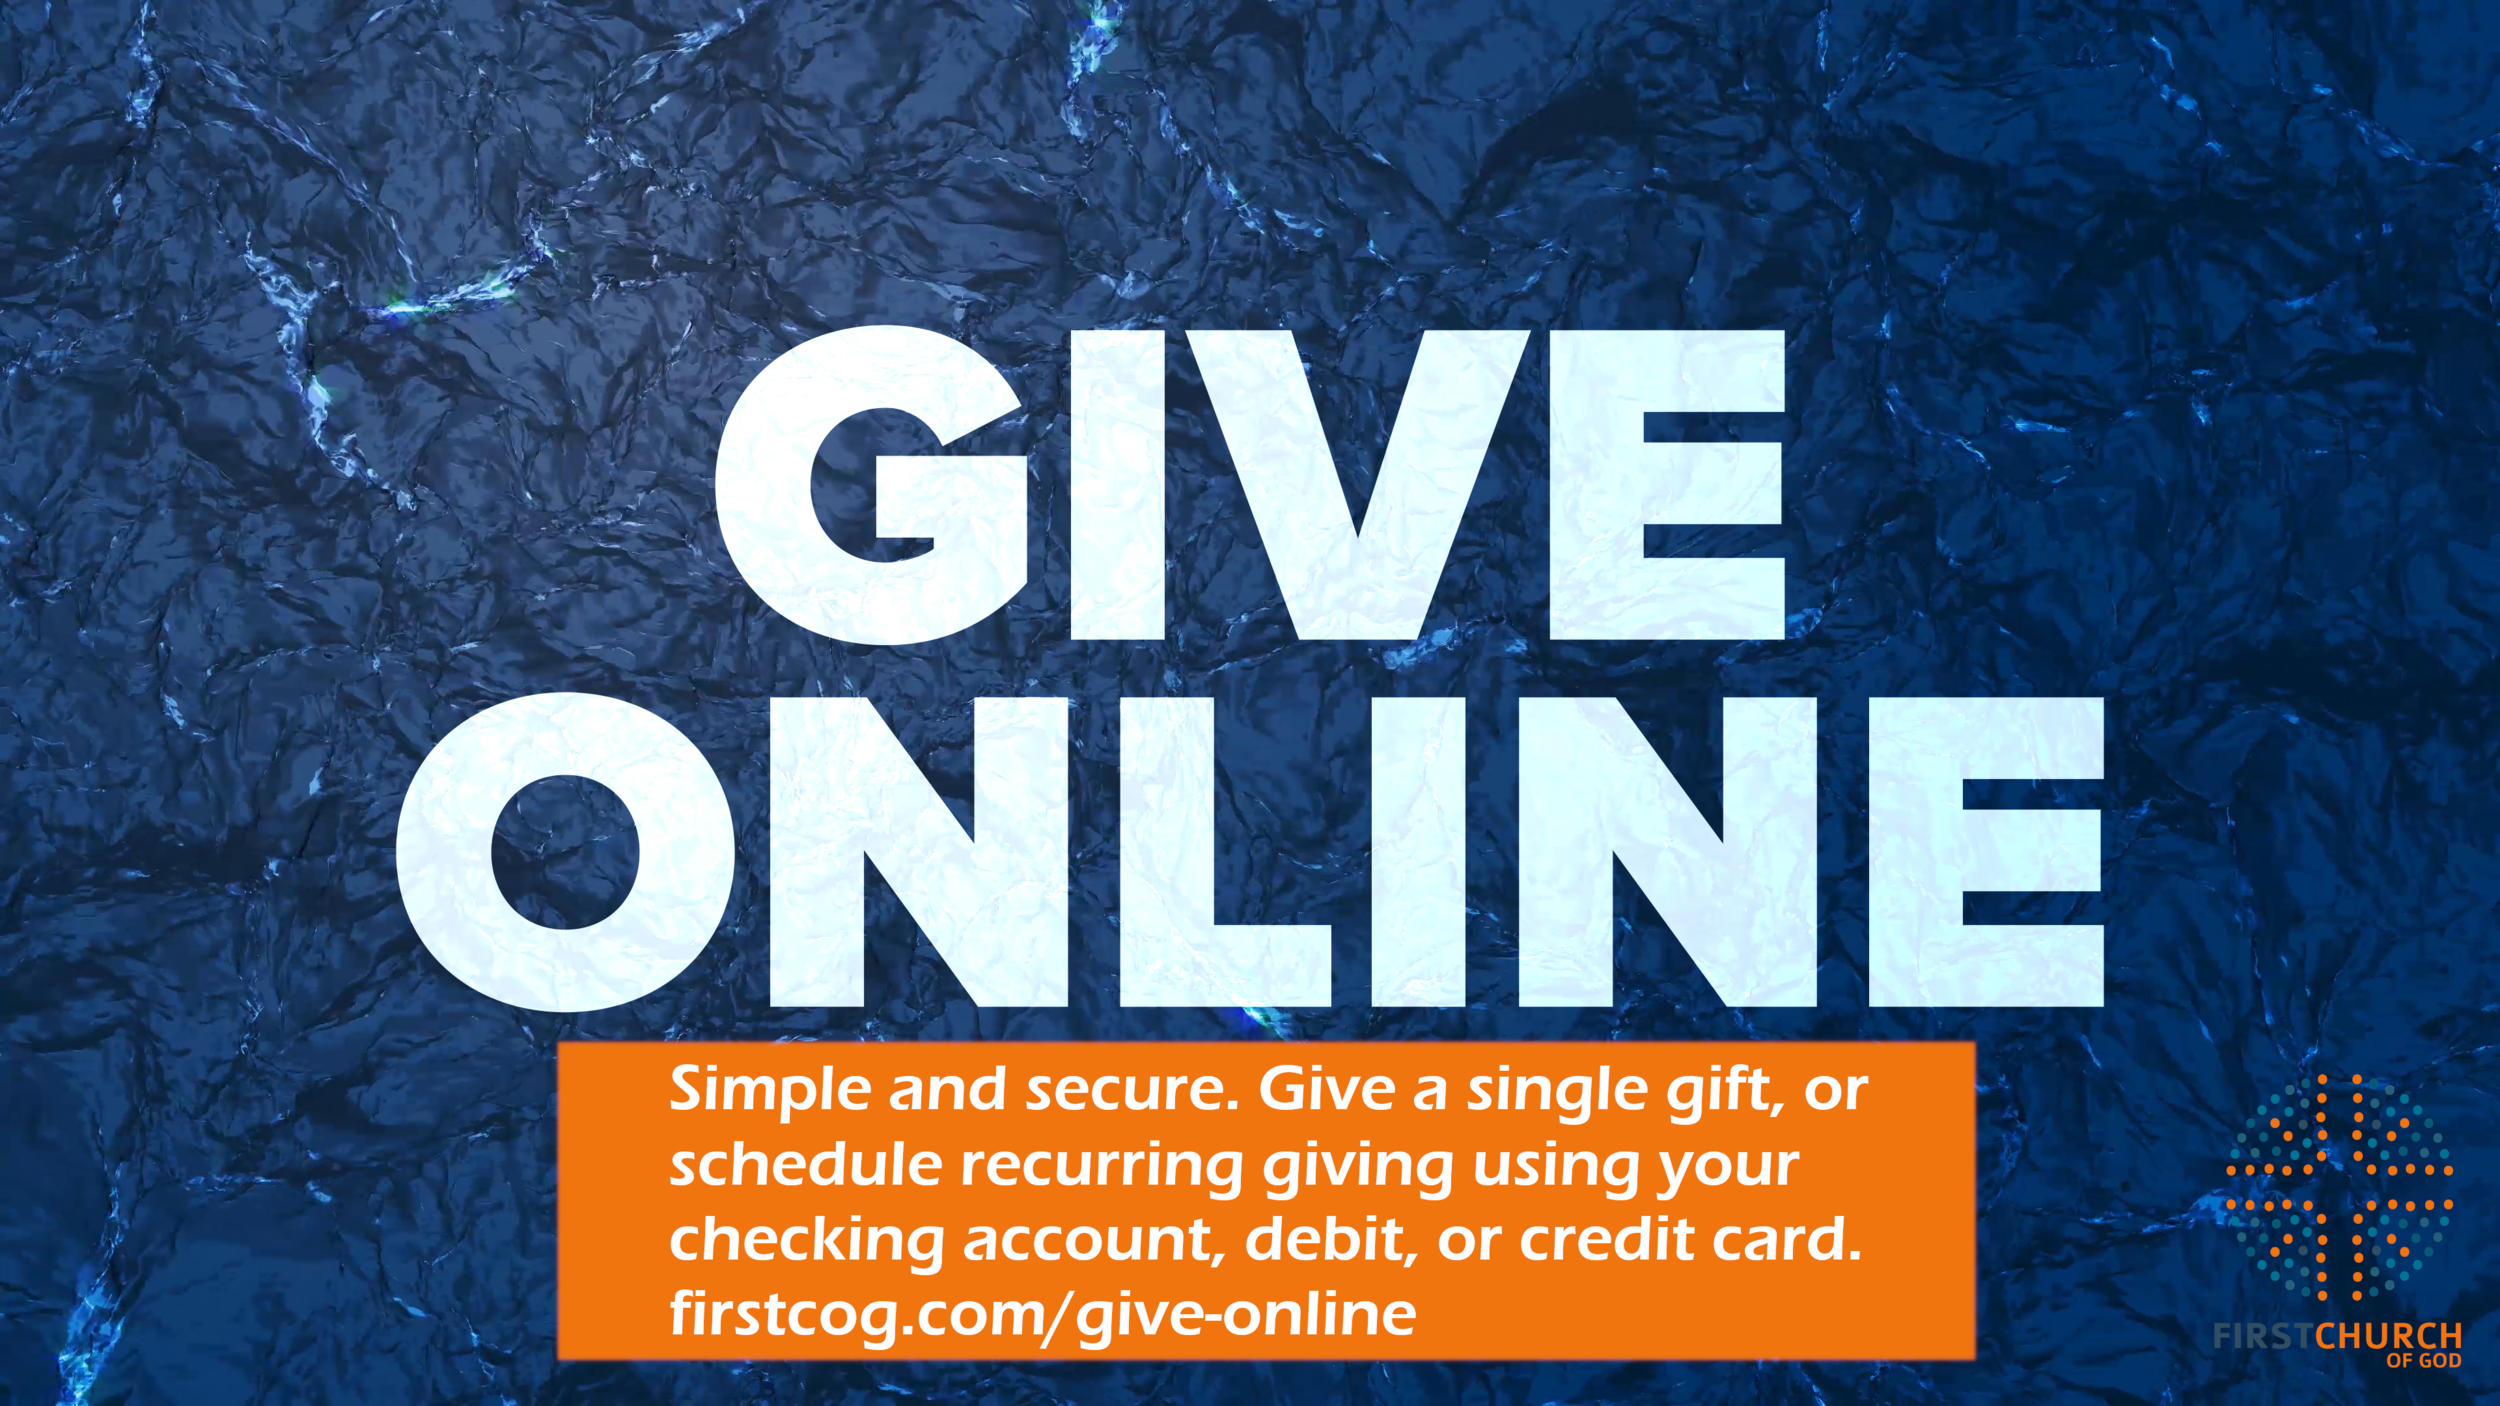 Simple and secure. Give a single gift, or schedule recurring giving using your checking account, debit, or credit card. -